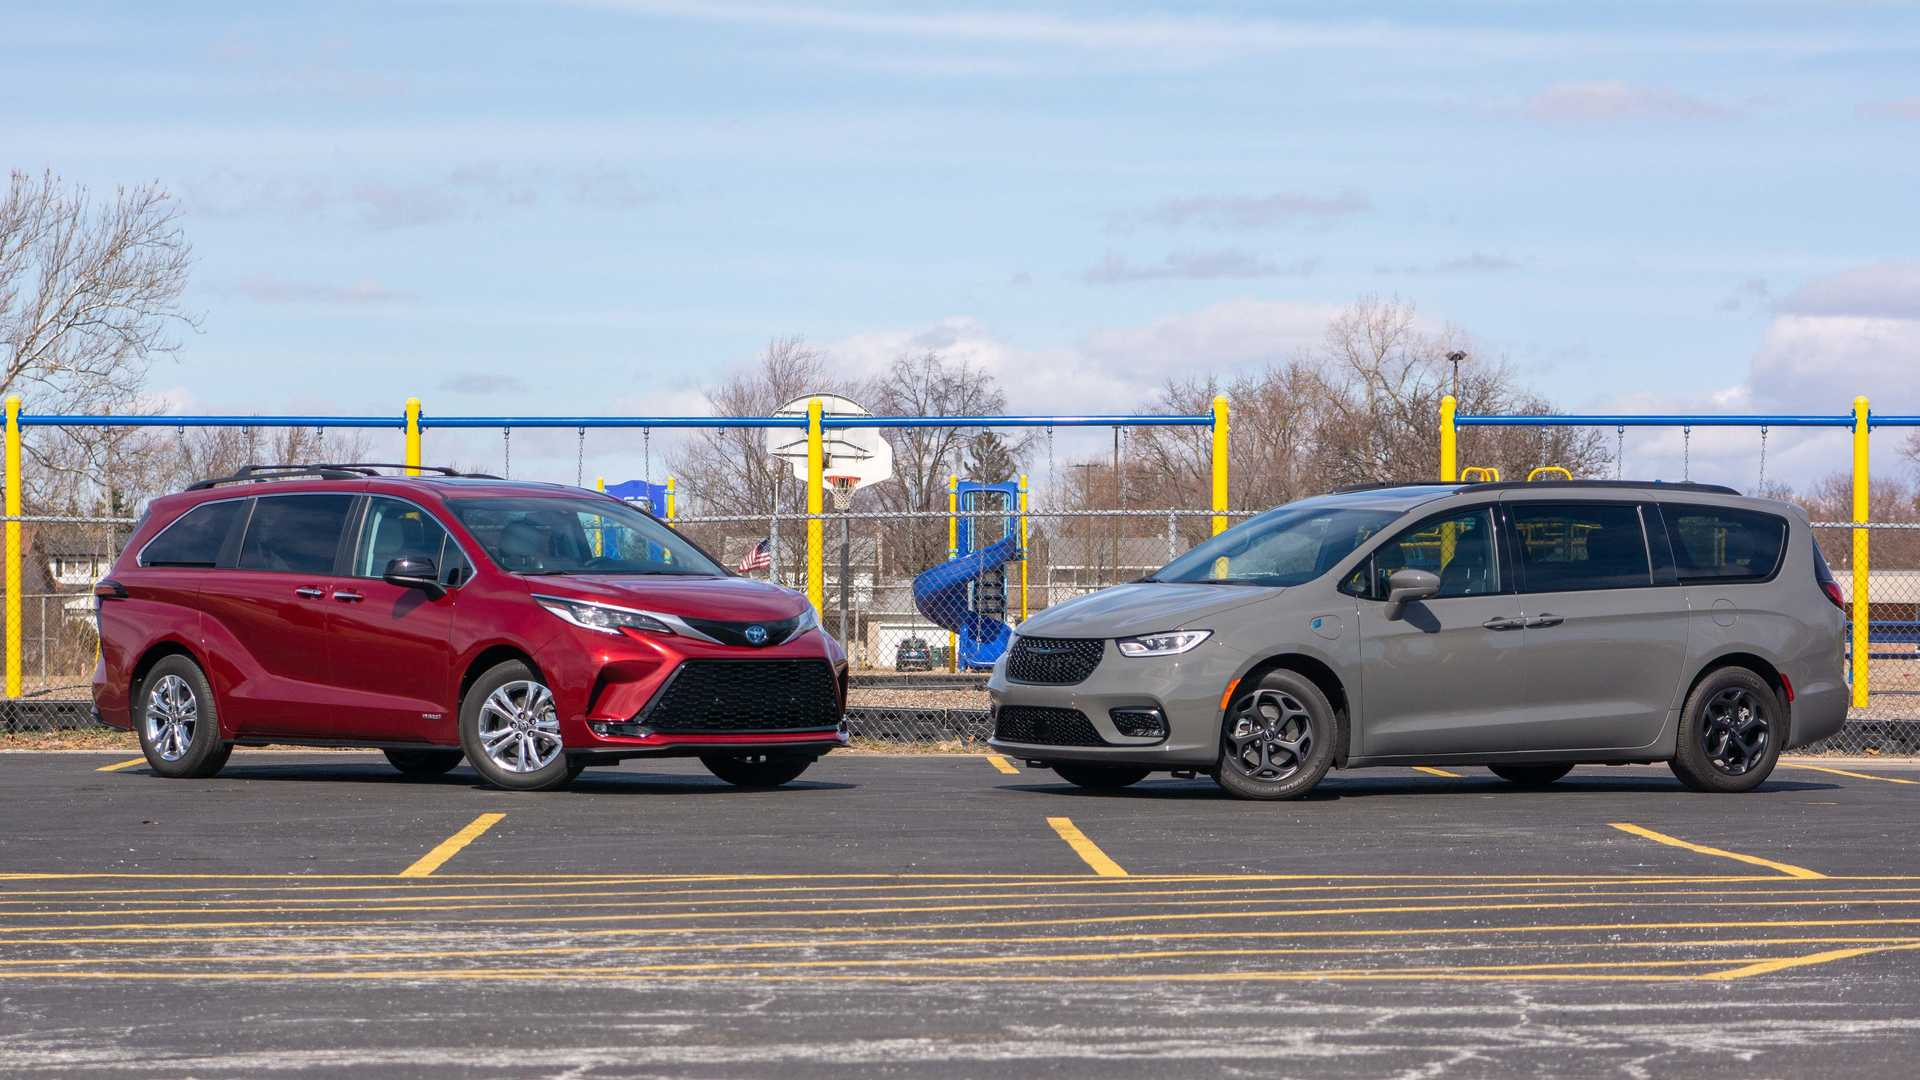 2021 Chrysler Pacifica Hybrid Vs 2021 Toyota Sienna Hybrid Comparison: Family Style